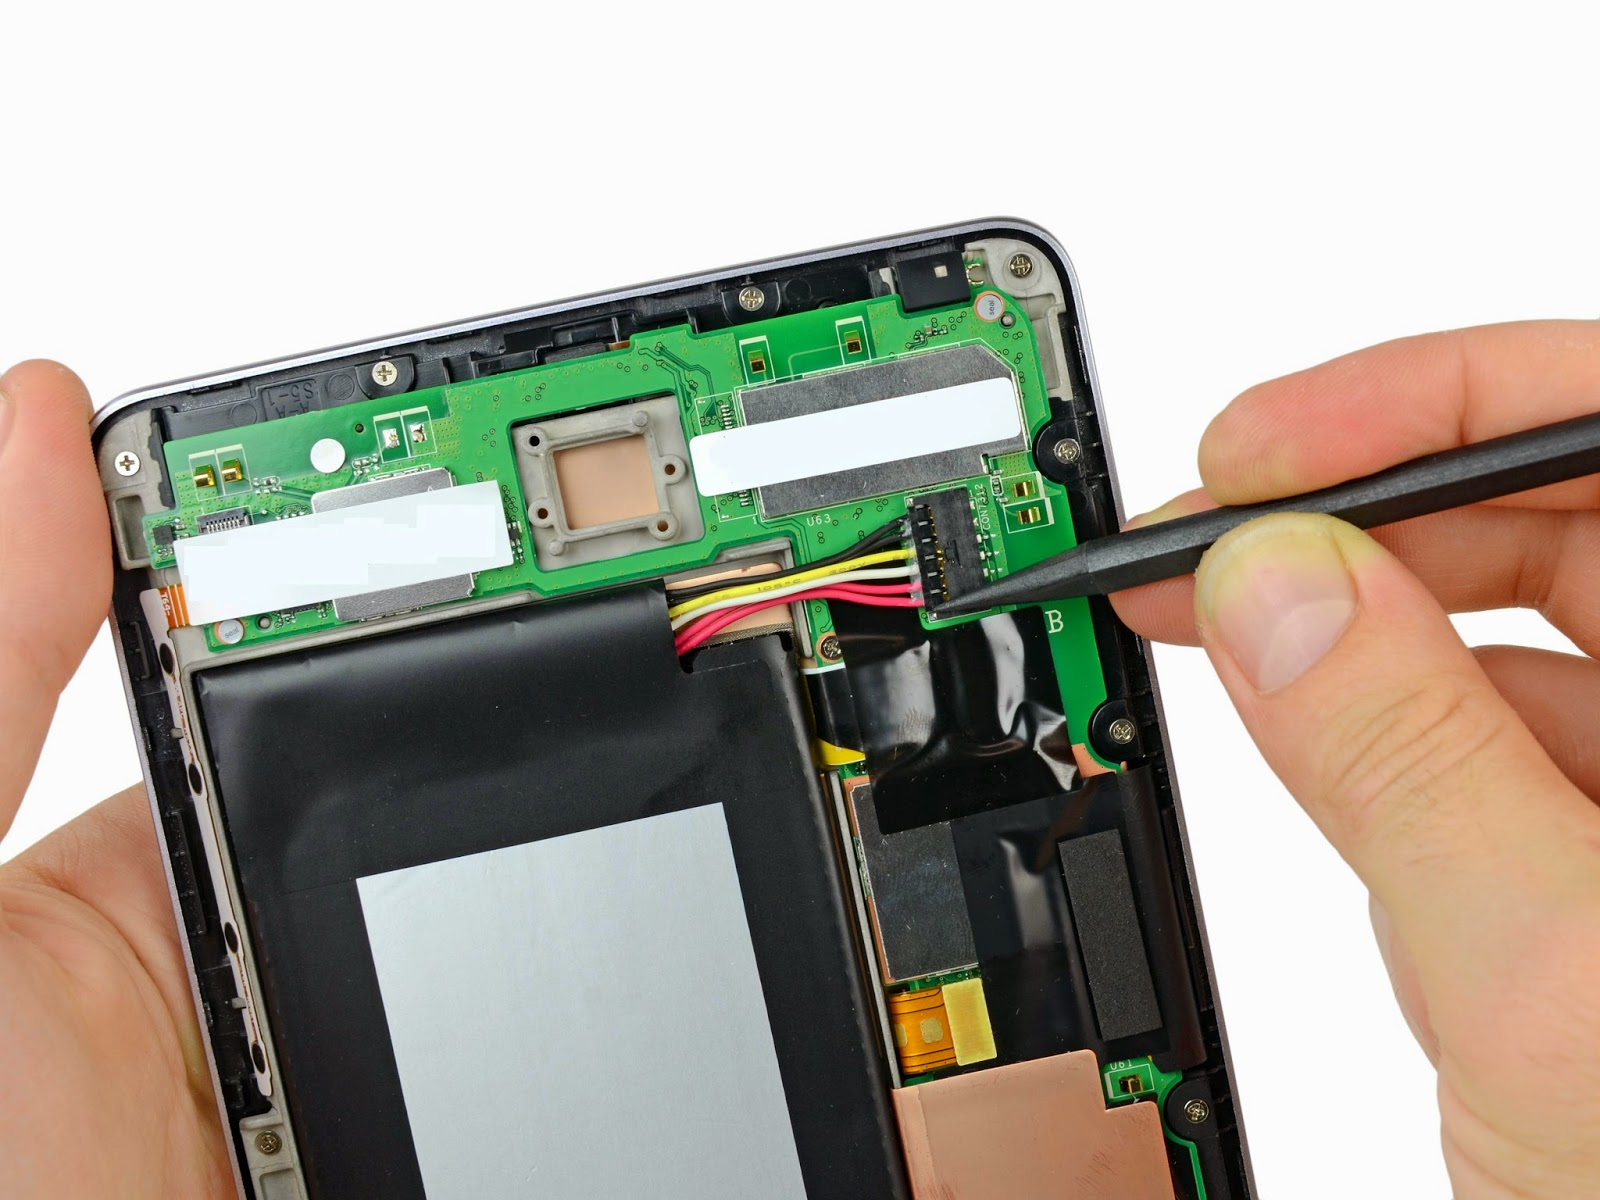 Google Nexus 7 Spare Parts India Tablet Service Center One Digitizer Circuit Broken Touch Screen Display Repair Centre